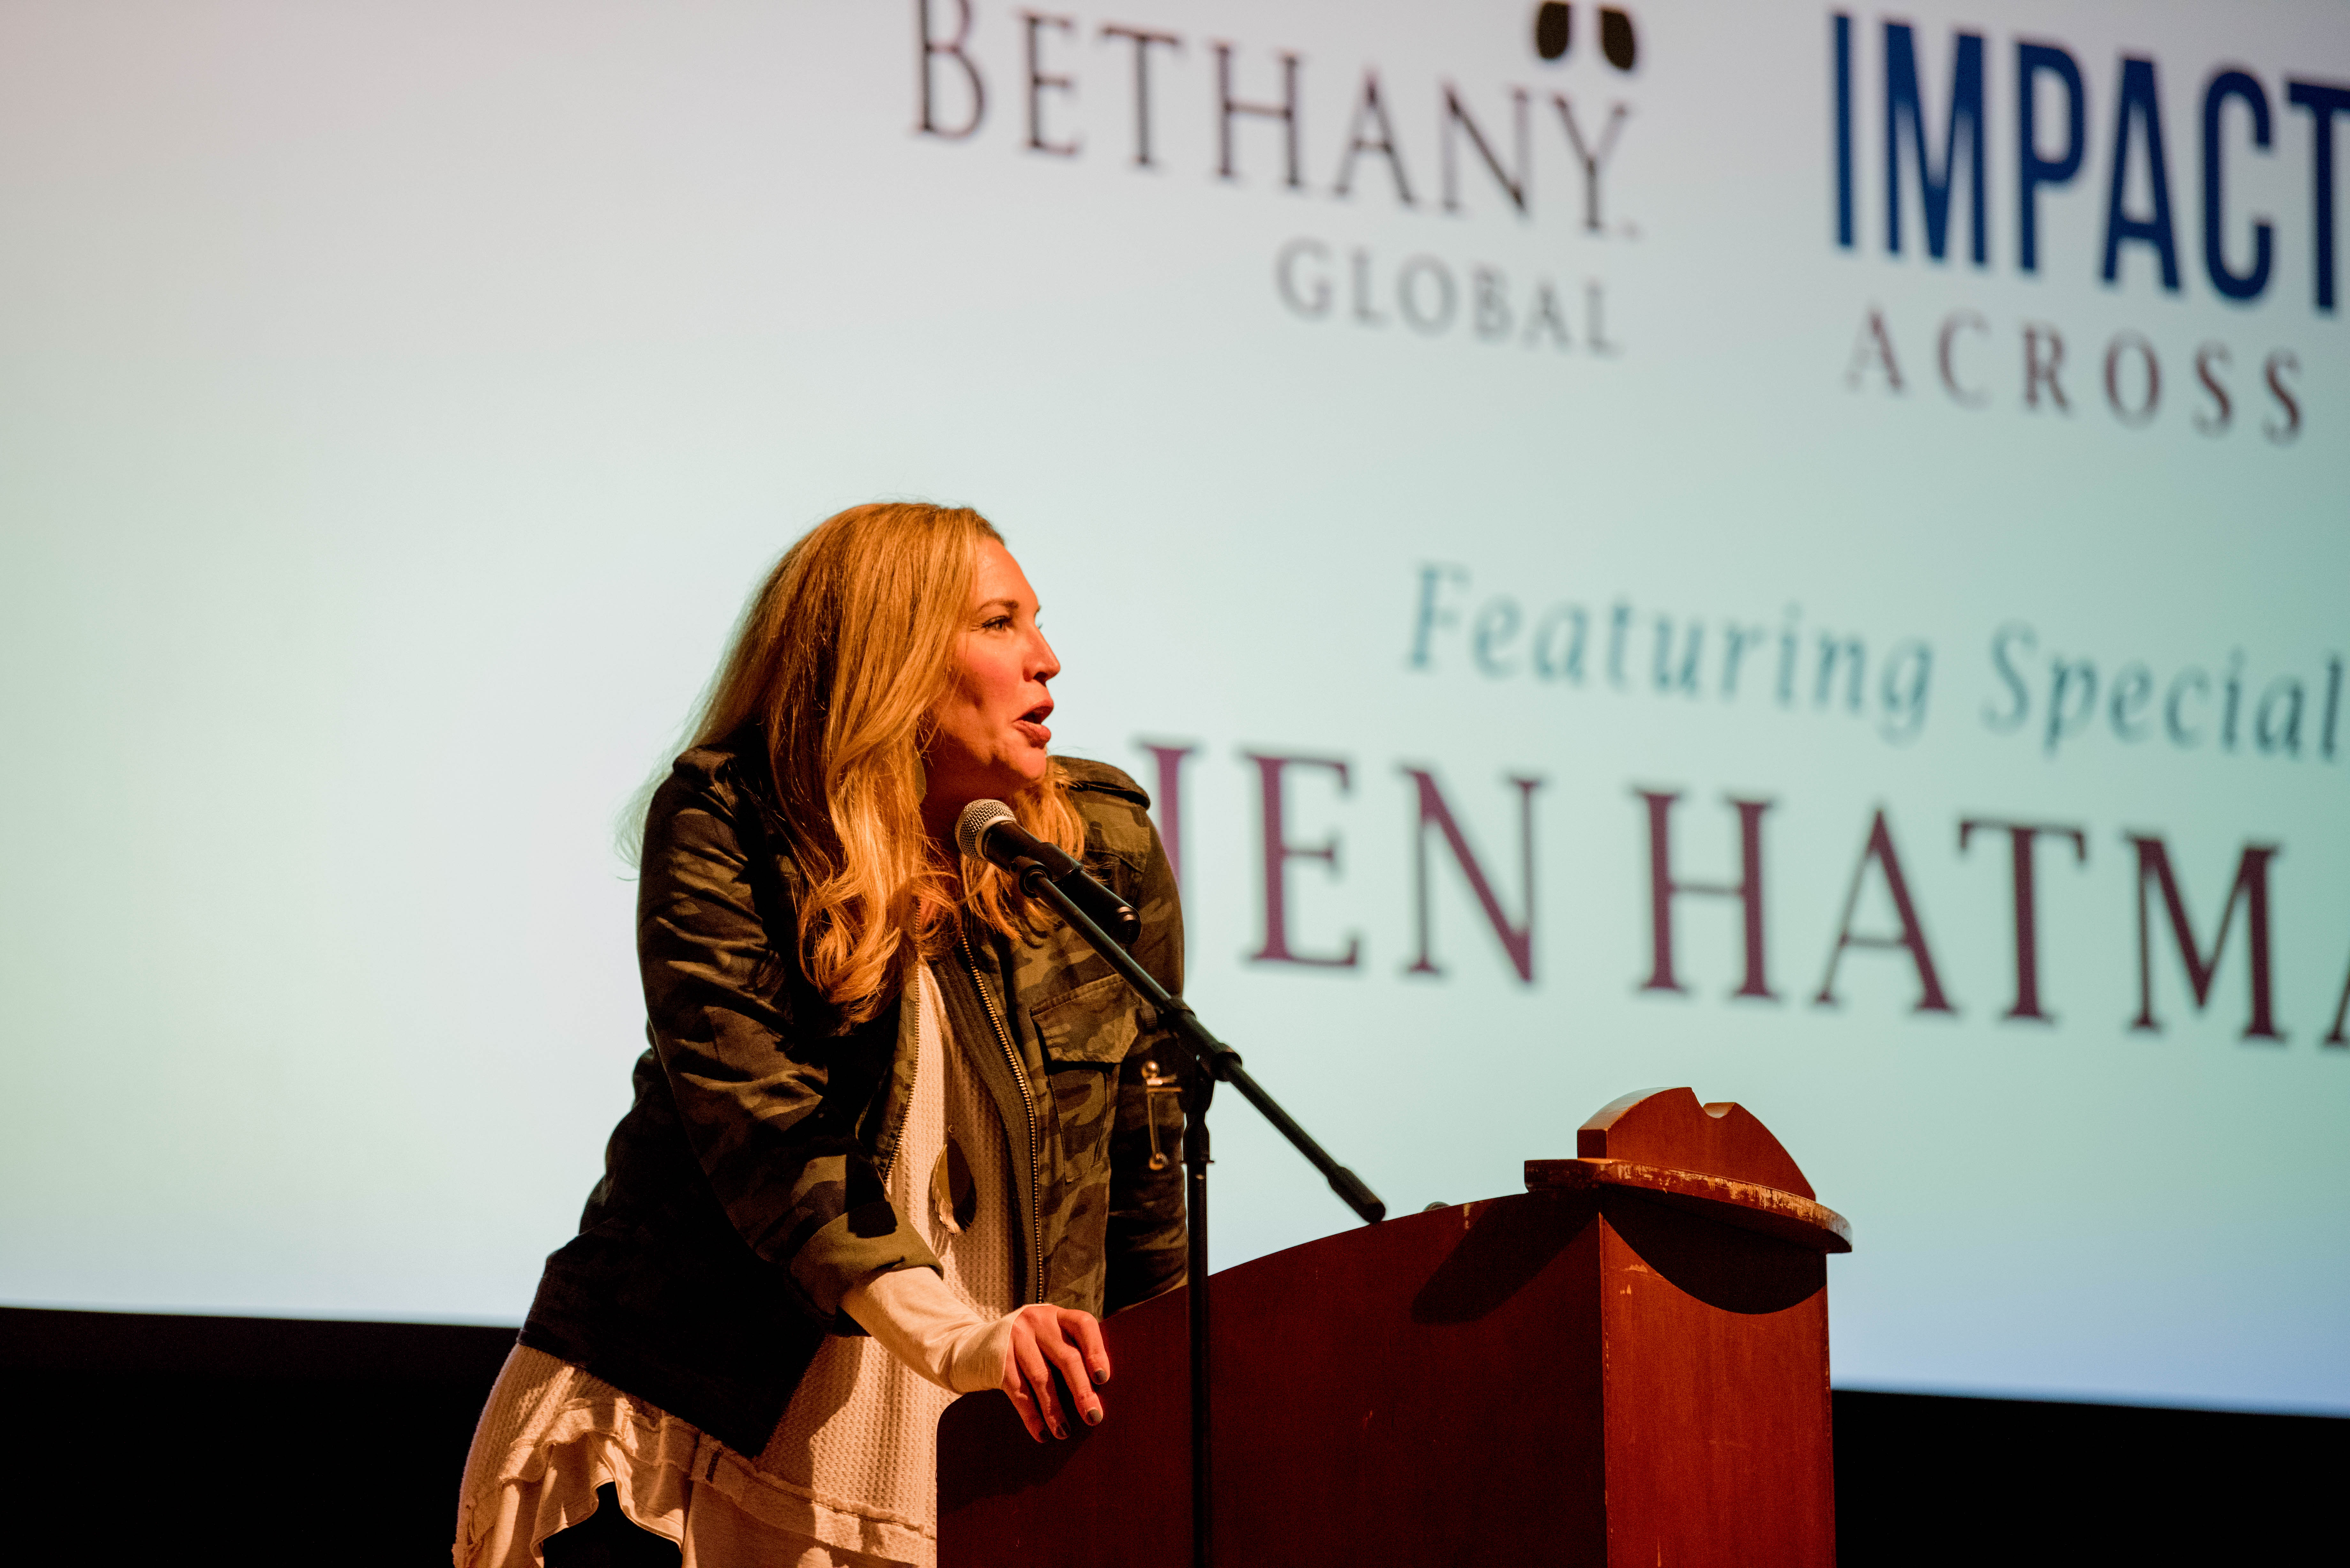 Bethany Global holds first fundraiser event with a focus on family sponsorship